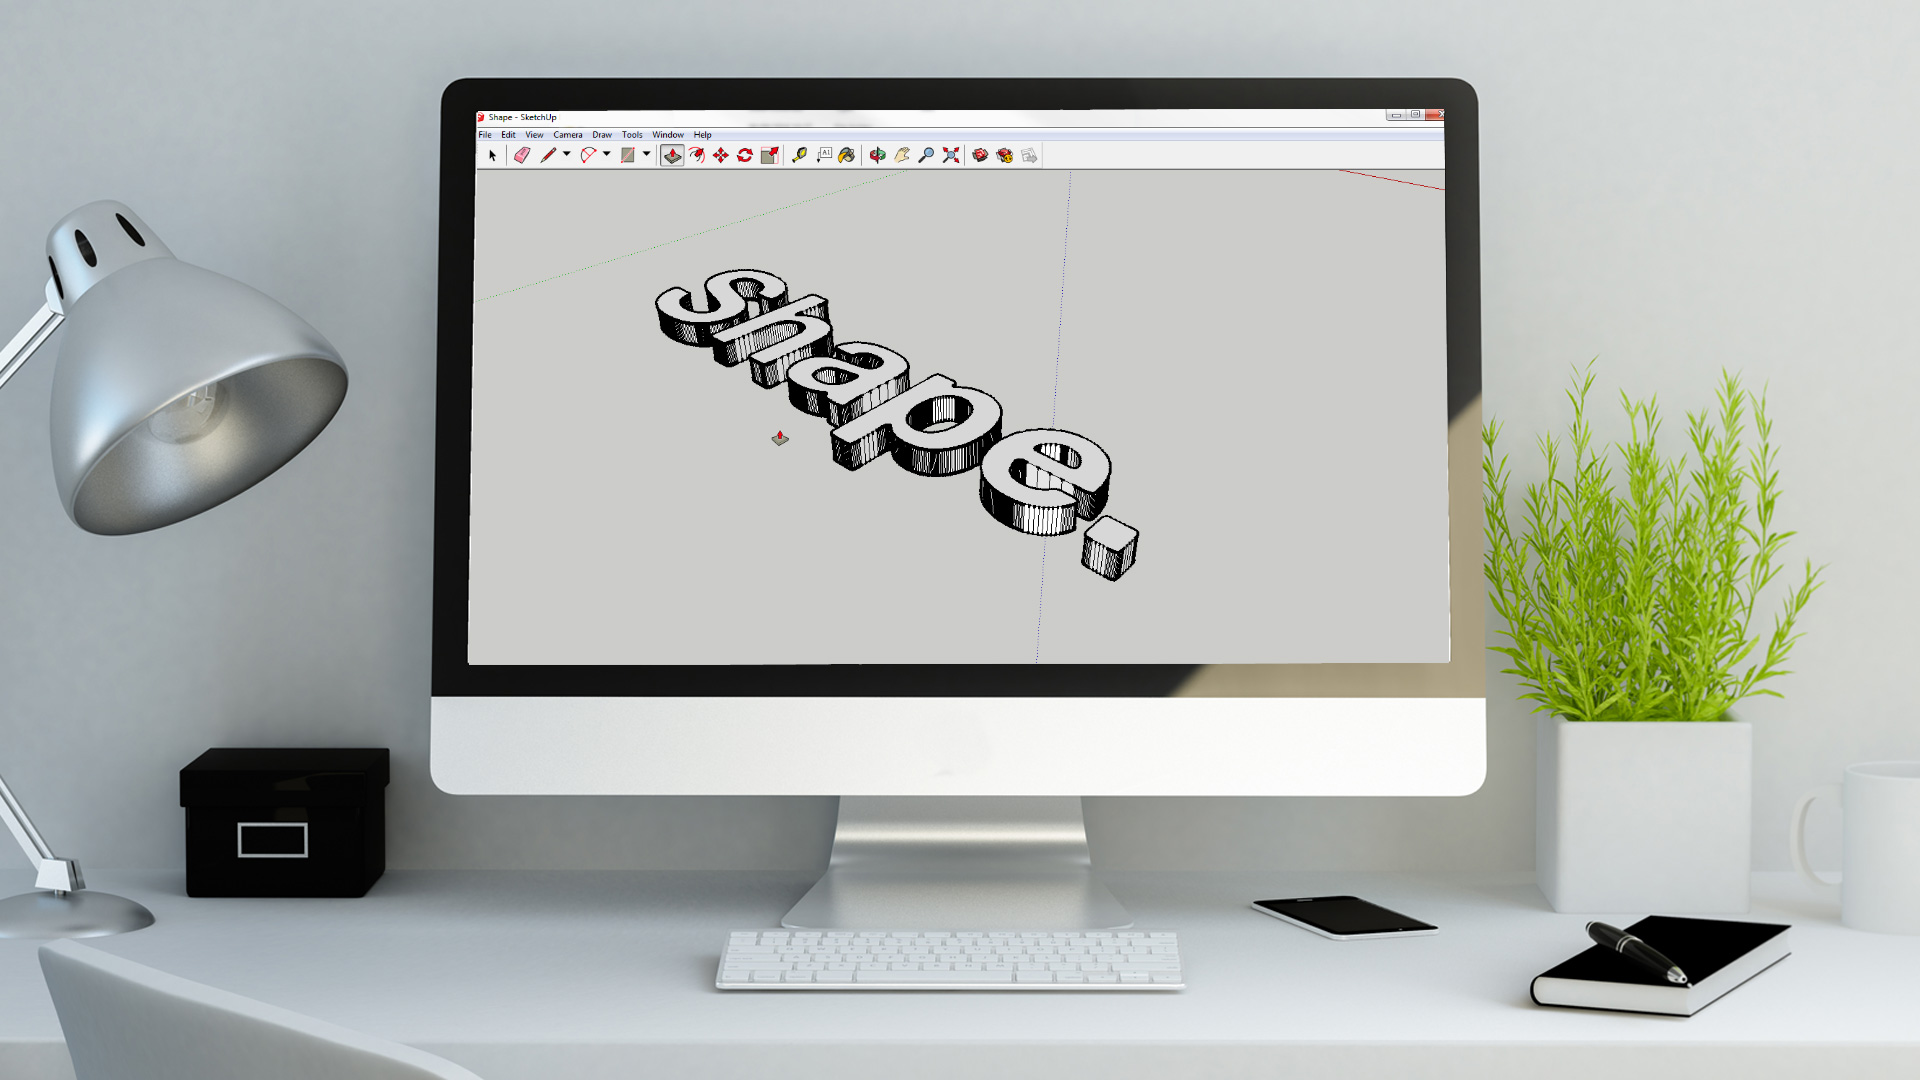 2D Logo to 3D Print using Adobe Illustrator and Sketchup Pro